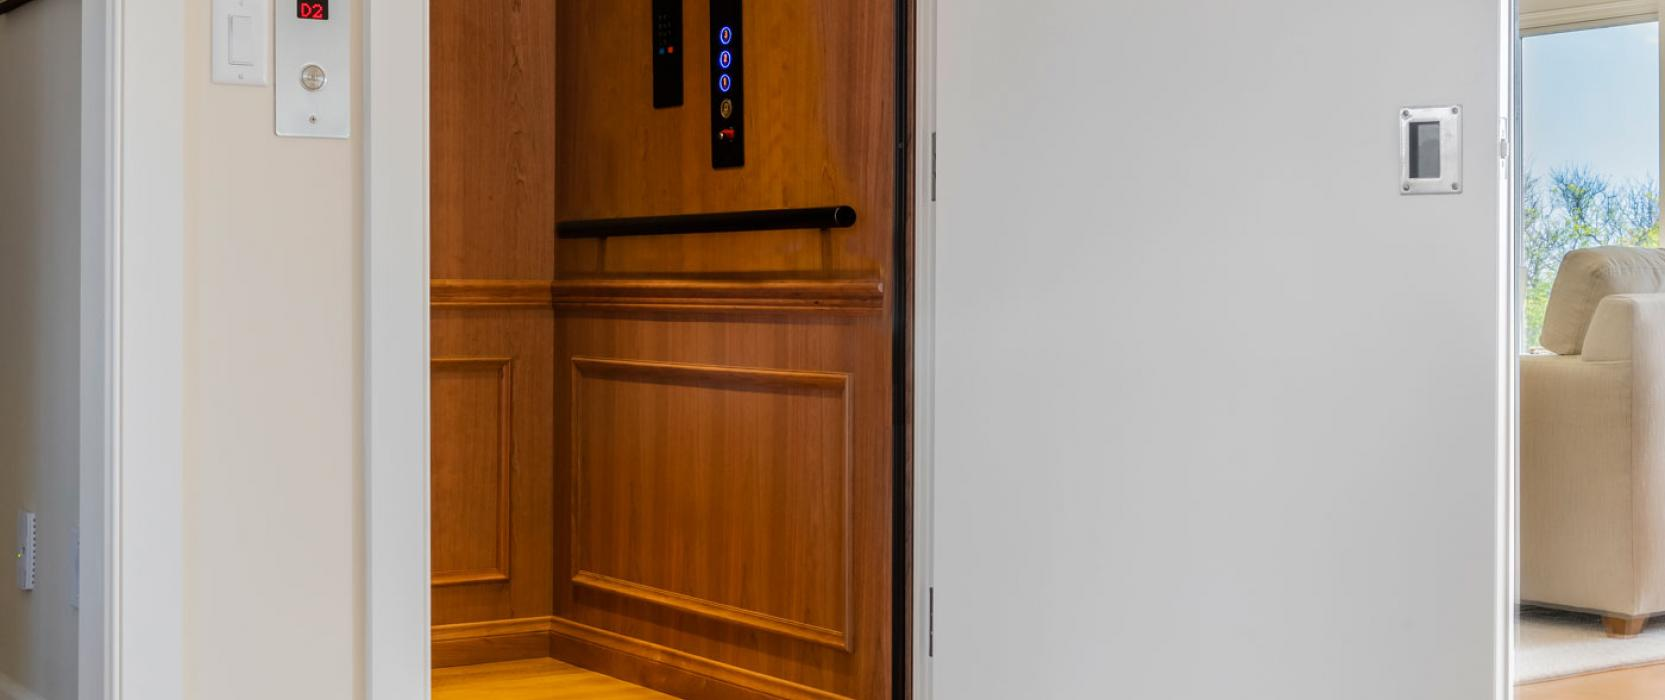 Custom oil-rubbed elevator for a Cape Cod home by Above & Beyond Elevator, Inc.